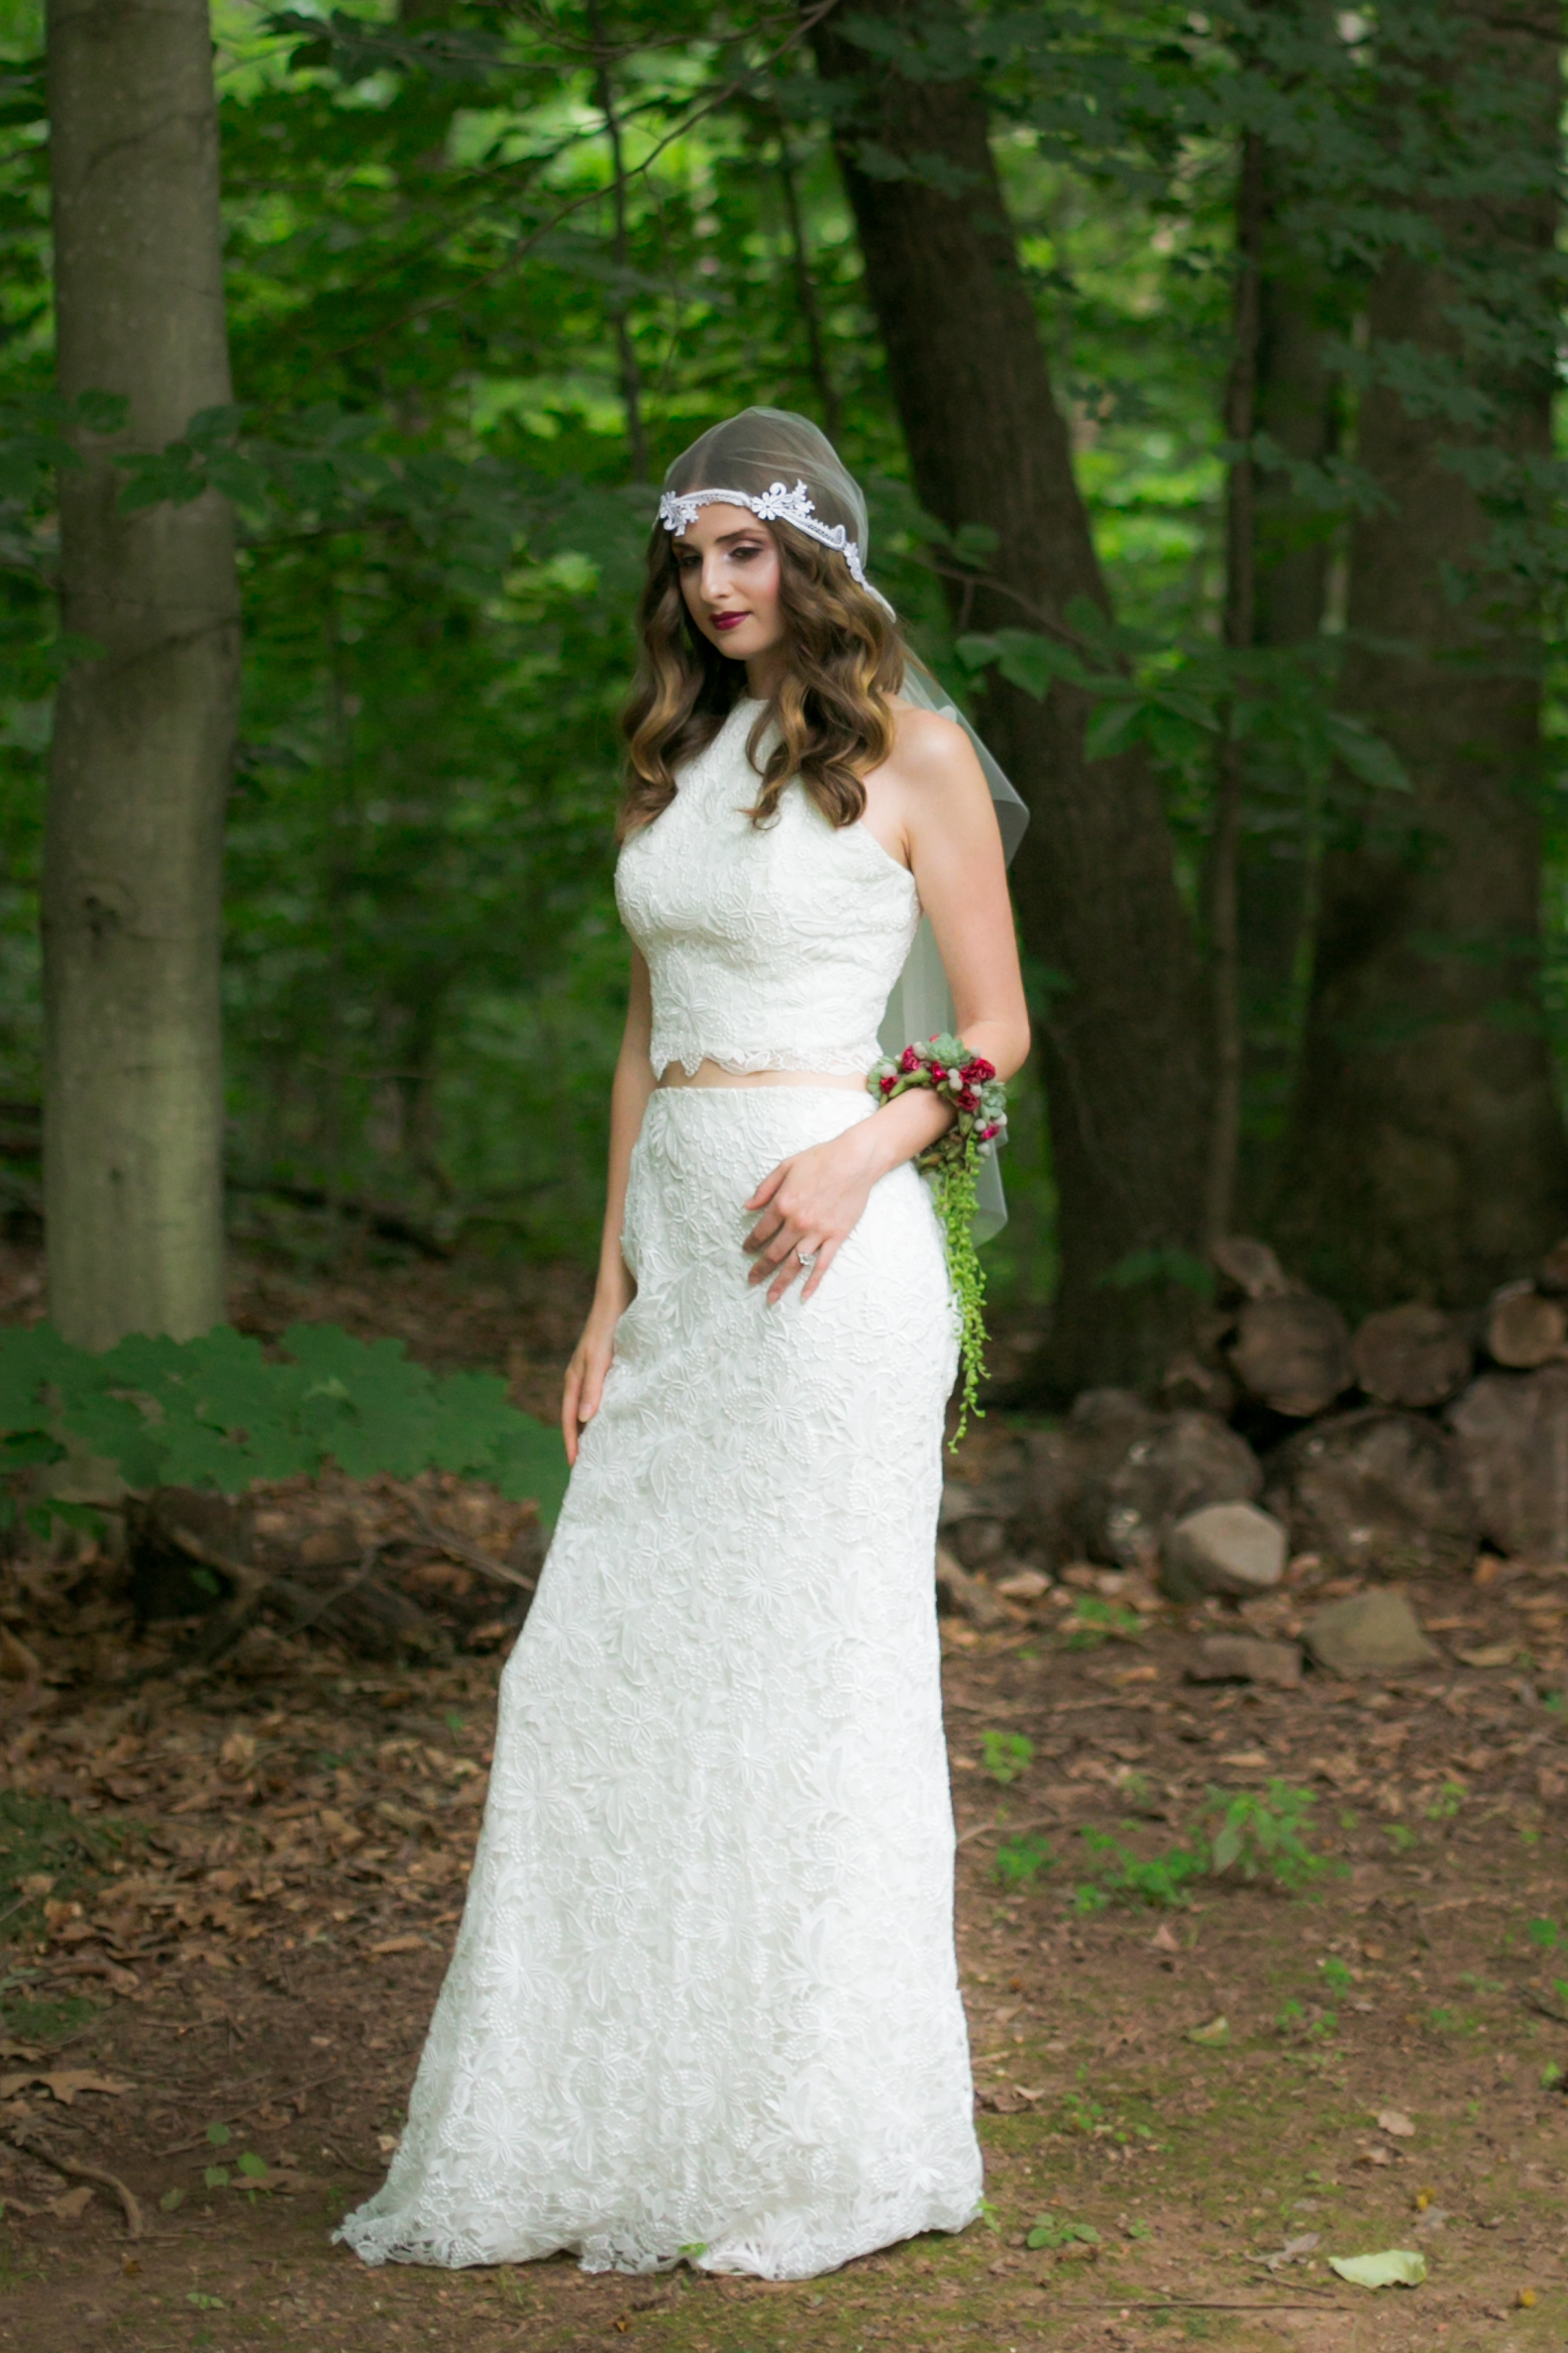 Bridal Separates - 2 Piece Lace Wedding Dress - Colchester, Connecticut Wedding Photographer